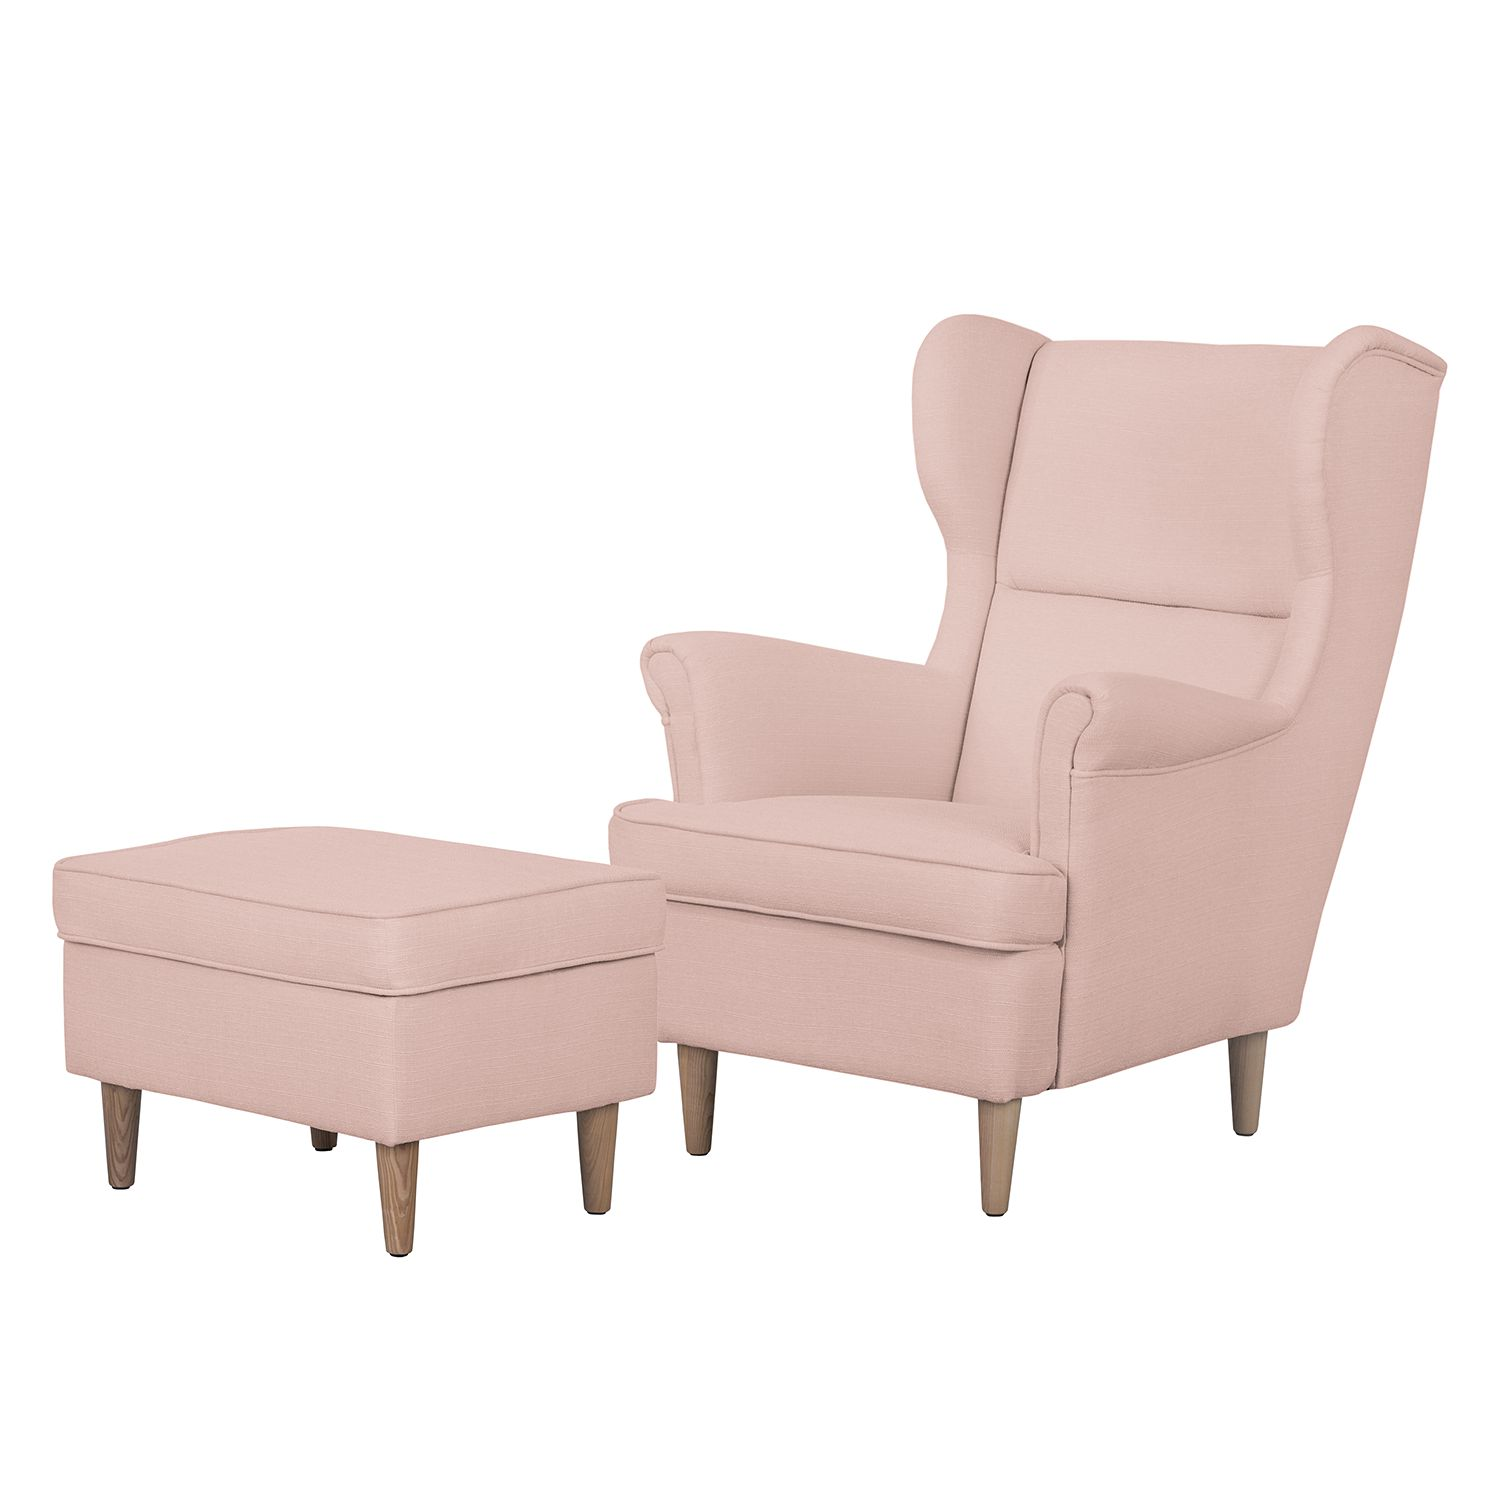 Ohrensessel Juna II - Webstoff - Mit Hocker - Mauve, kollected by Johanna